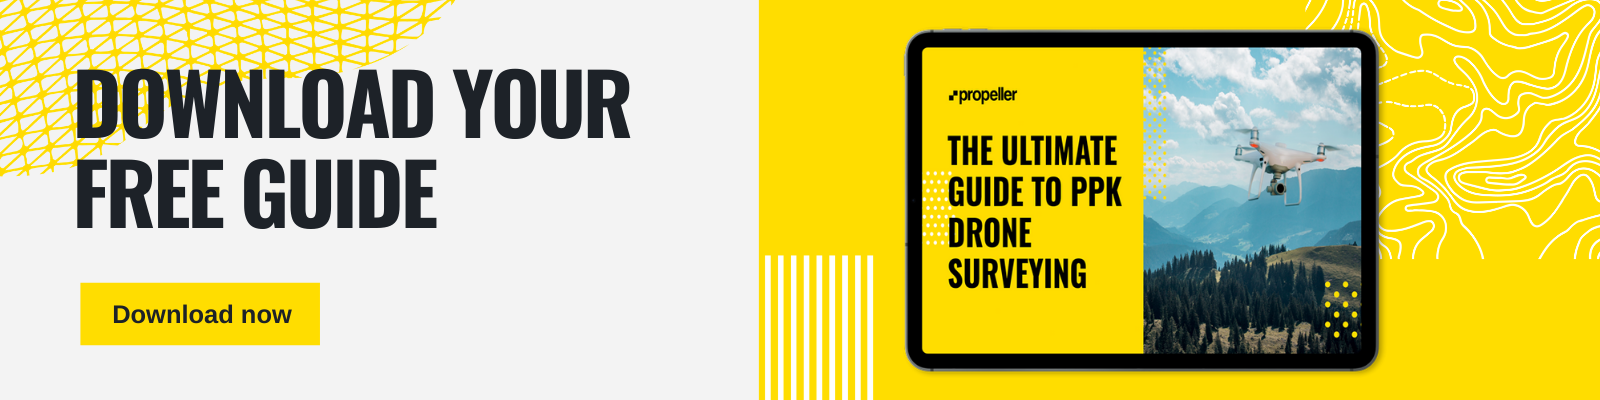 Ultimate Guide to PPK Drone Surveying